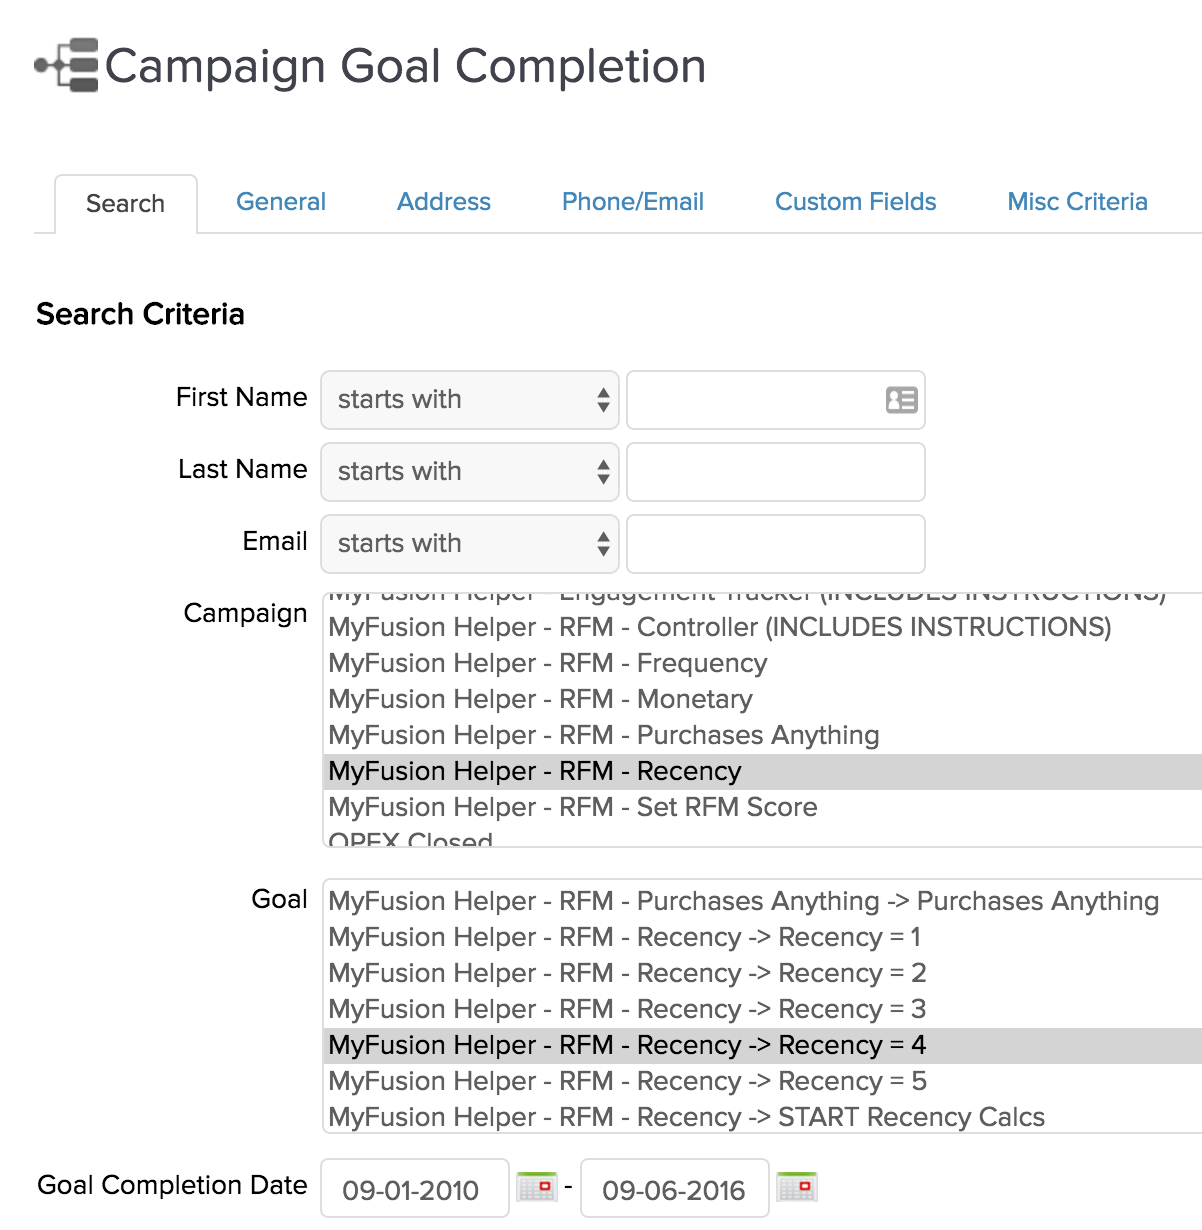 campaign-goal-completion-report